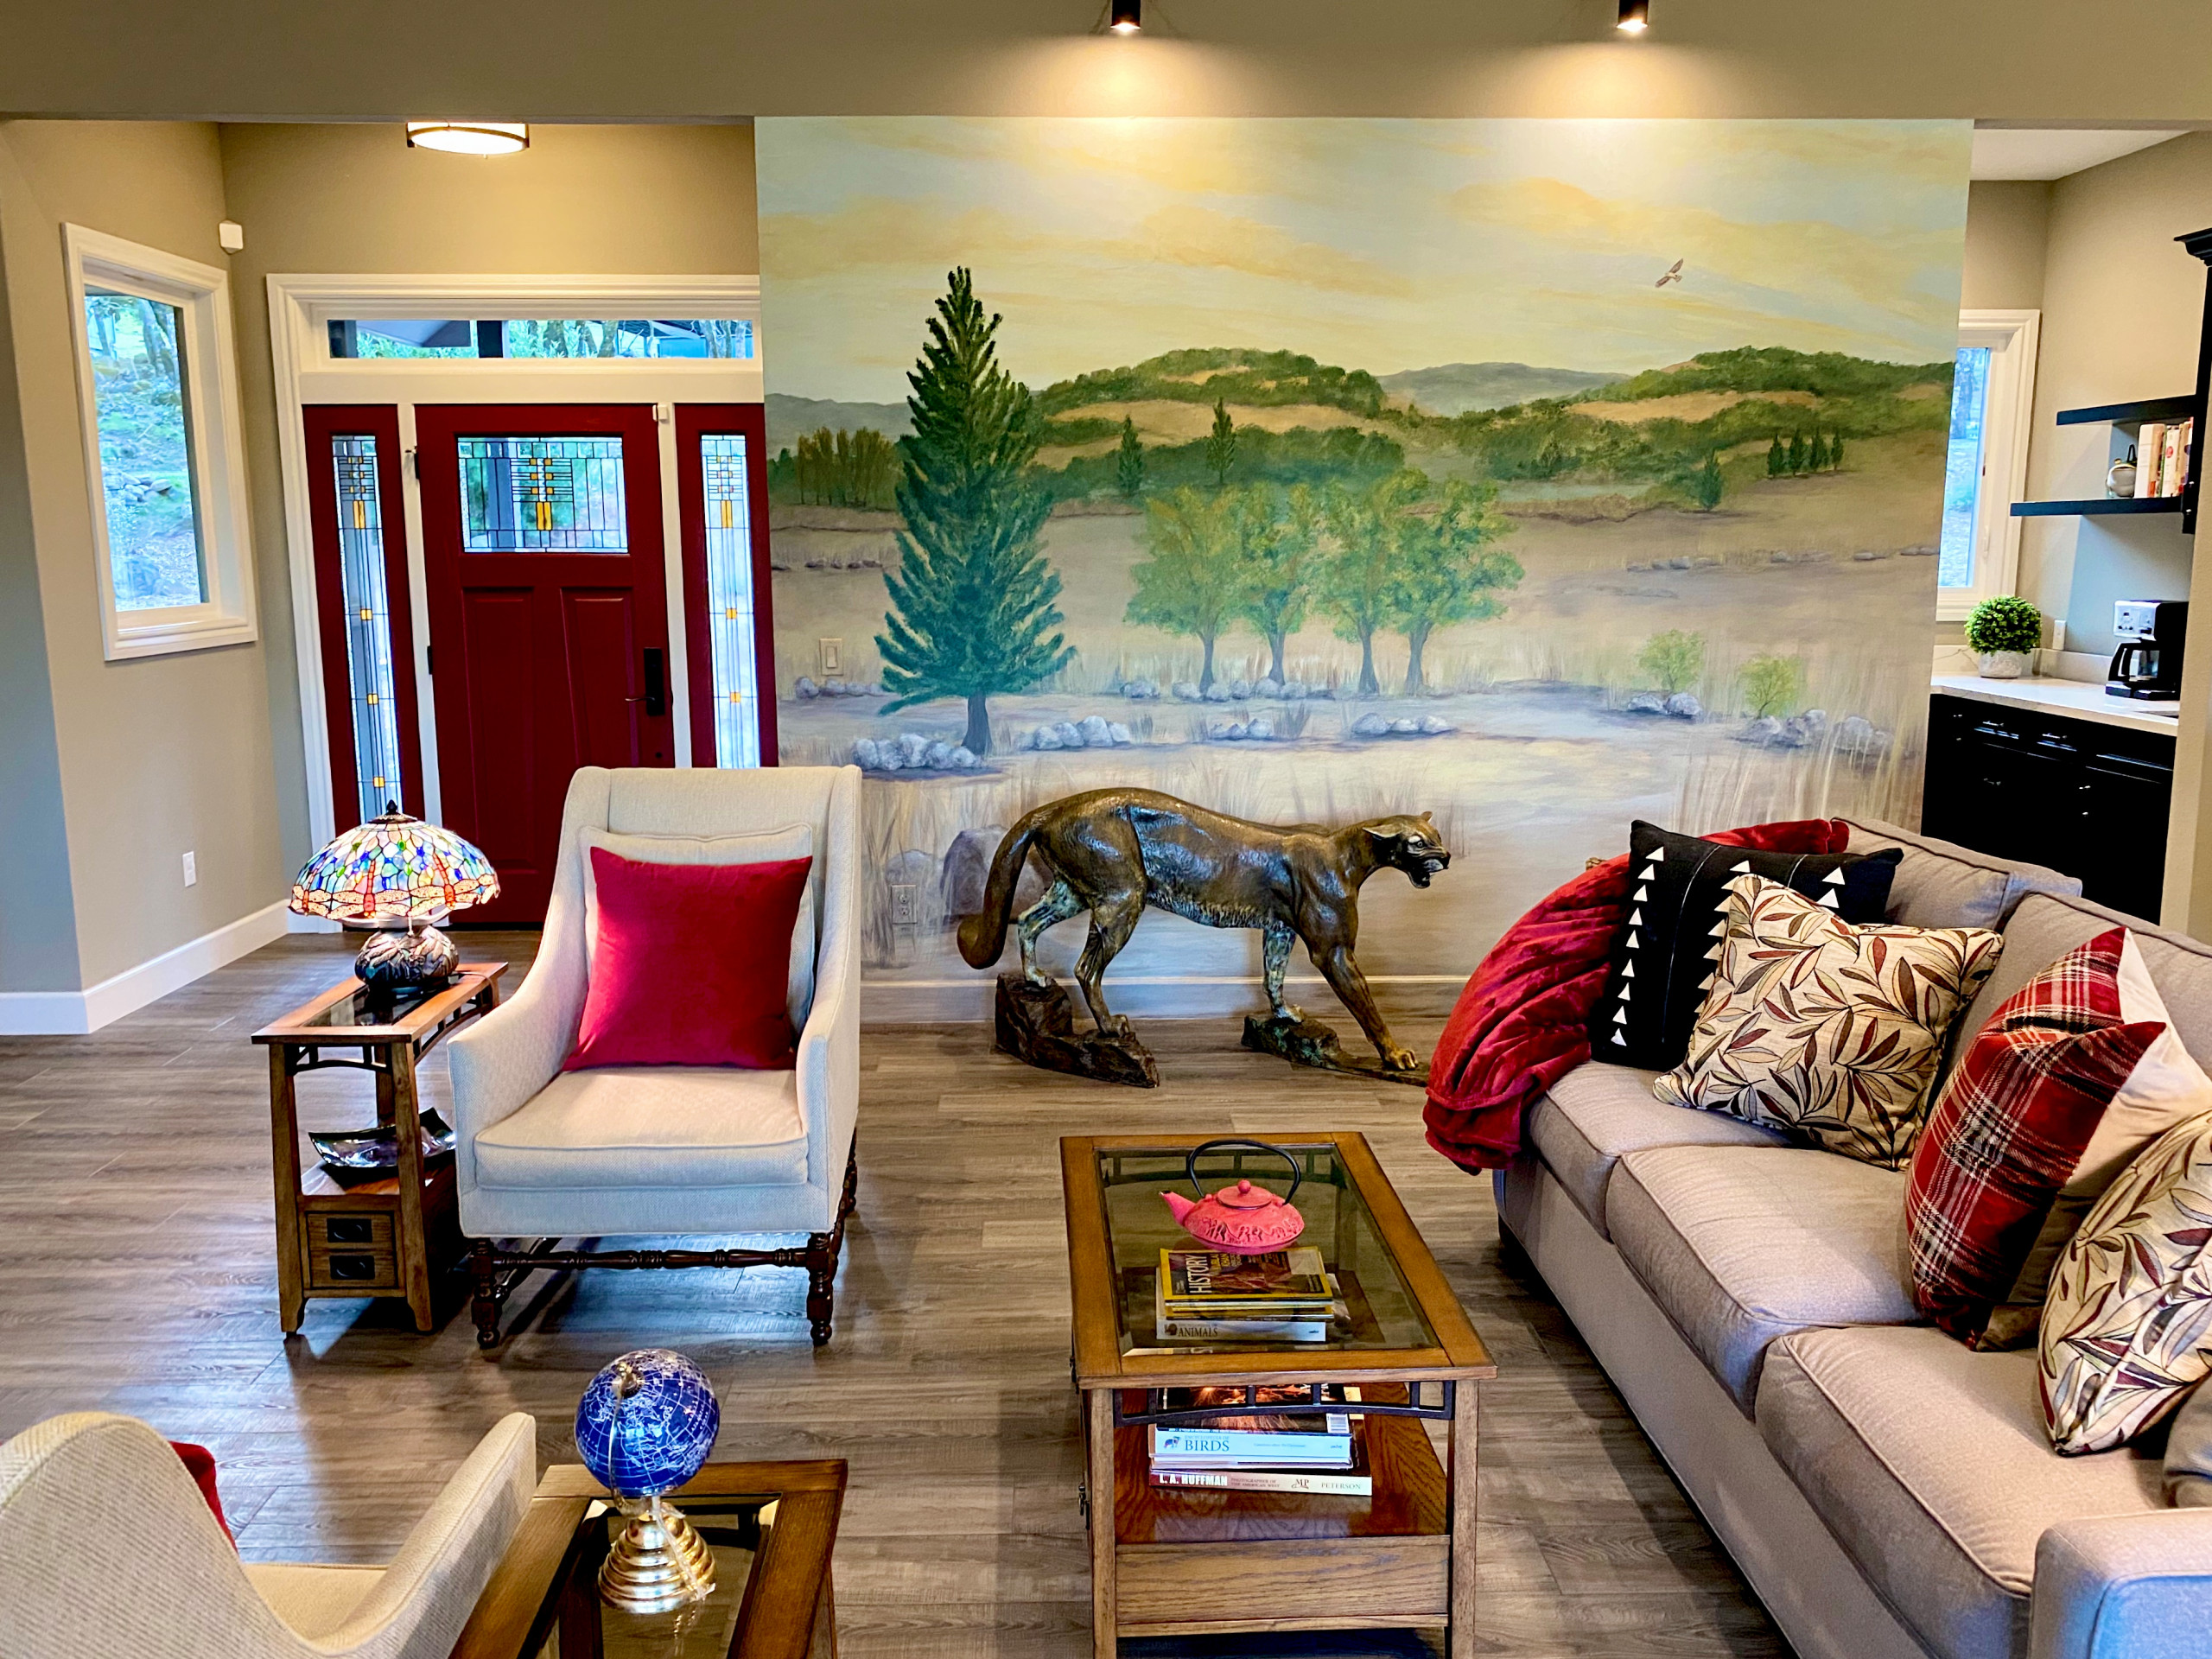 Home Sweet Home Living Room in Santa Rosa: A Rebuild After the Fire